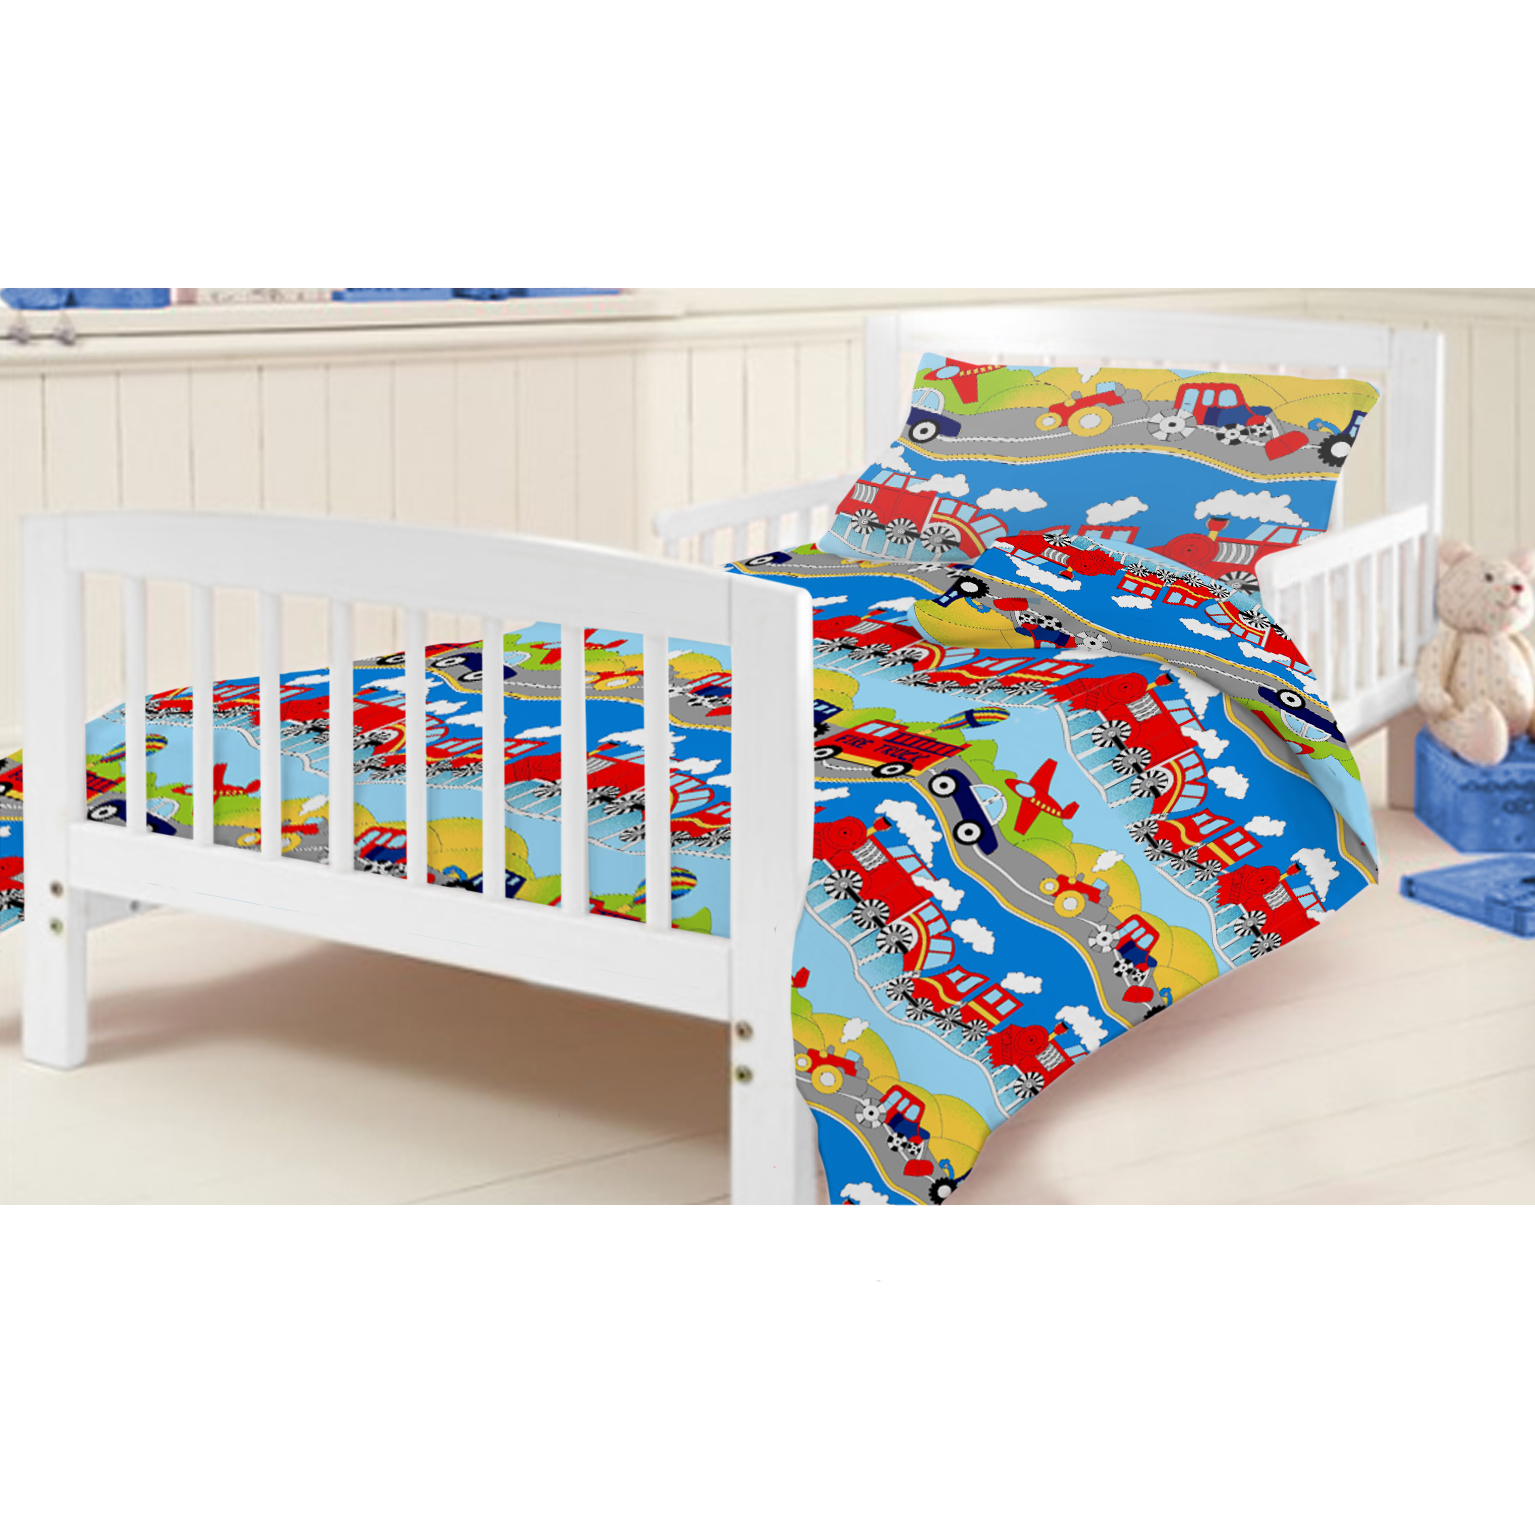 Ready Steady Bed Childrens Kids Cot Bed Junior Duvet